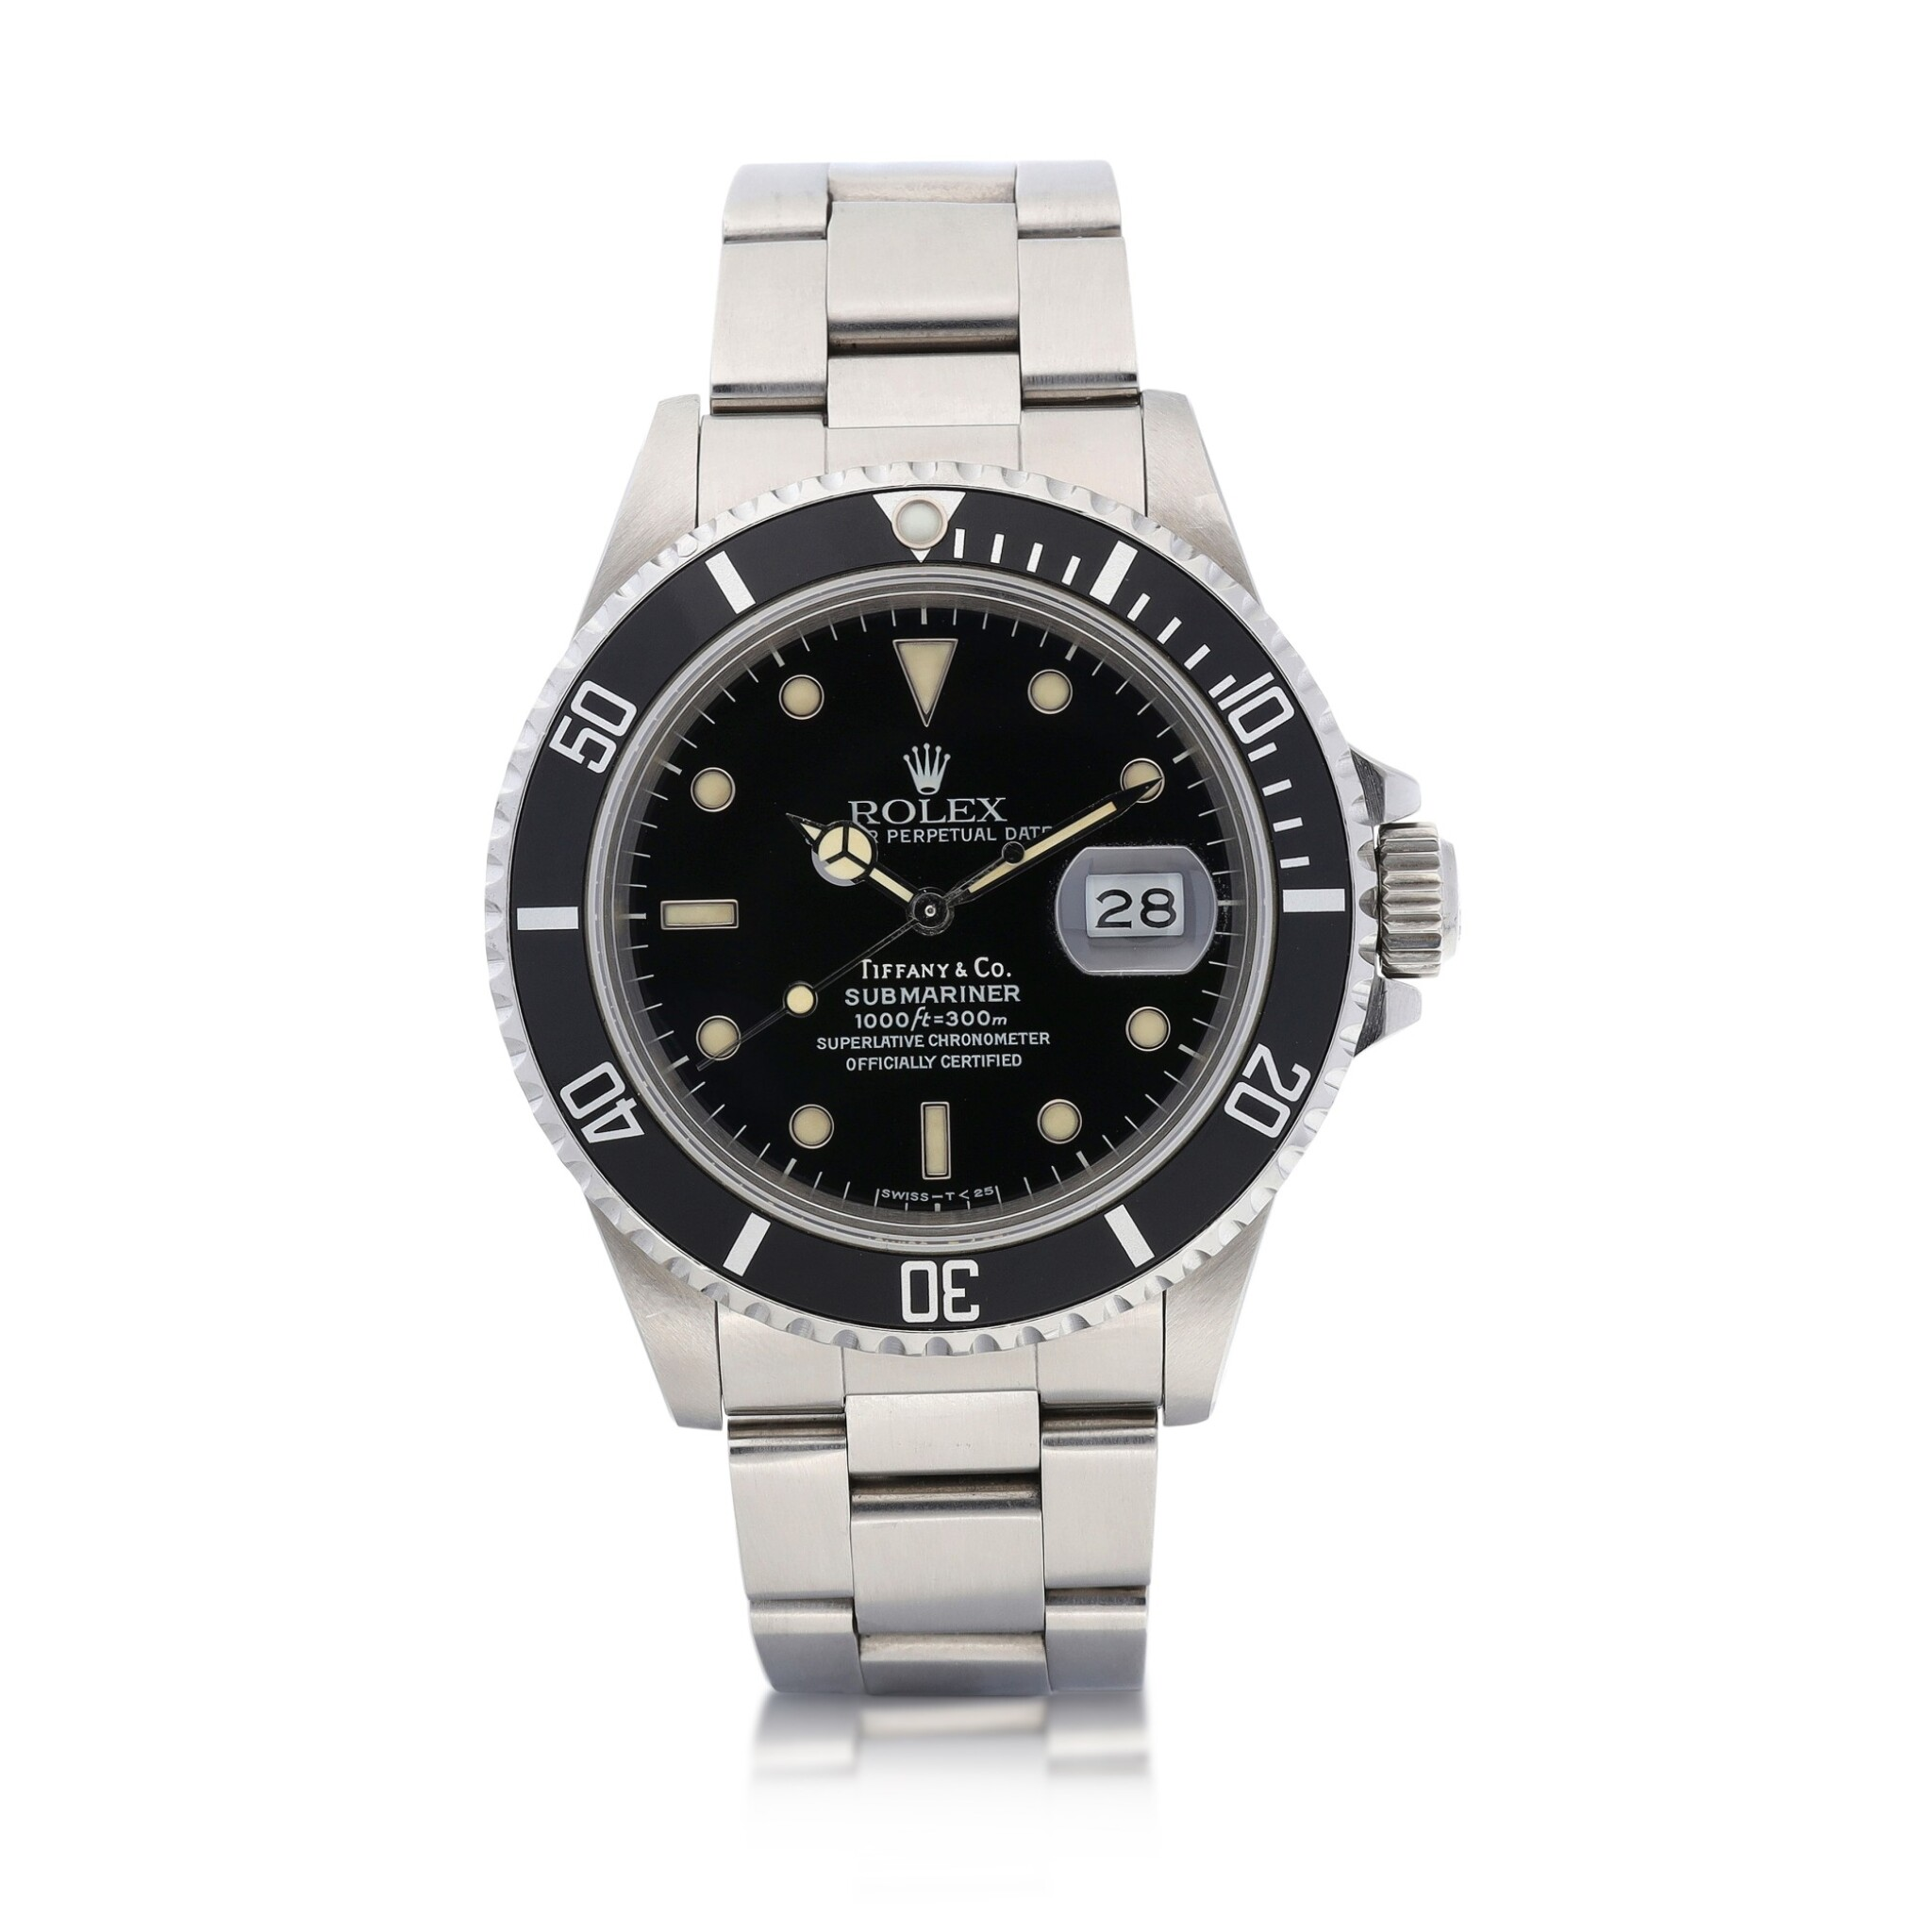 View 1 of Lot 8015. Rolex | Submariner, Reference 168000, A stainless steel wristwatch with date and bracelet, Retailed by Tiffany & Co., Circa 1988 | 勞力士 | Submariner 型號168000   精鋼鏈帶腕錶,備日期顯示,由Tiffany & Co.發行,約1988年製.